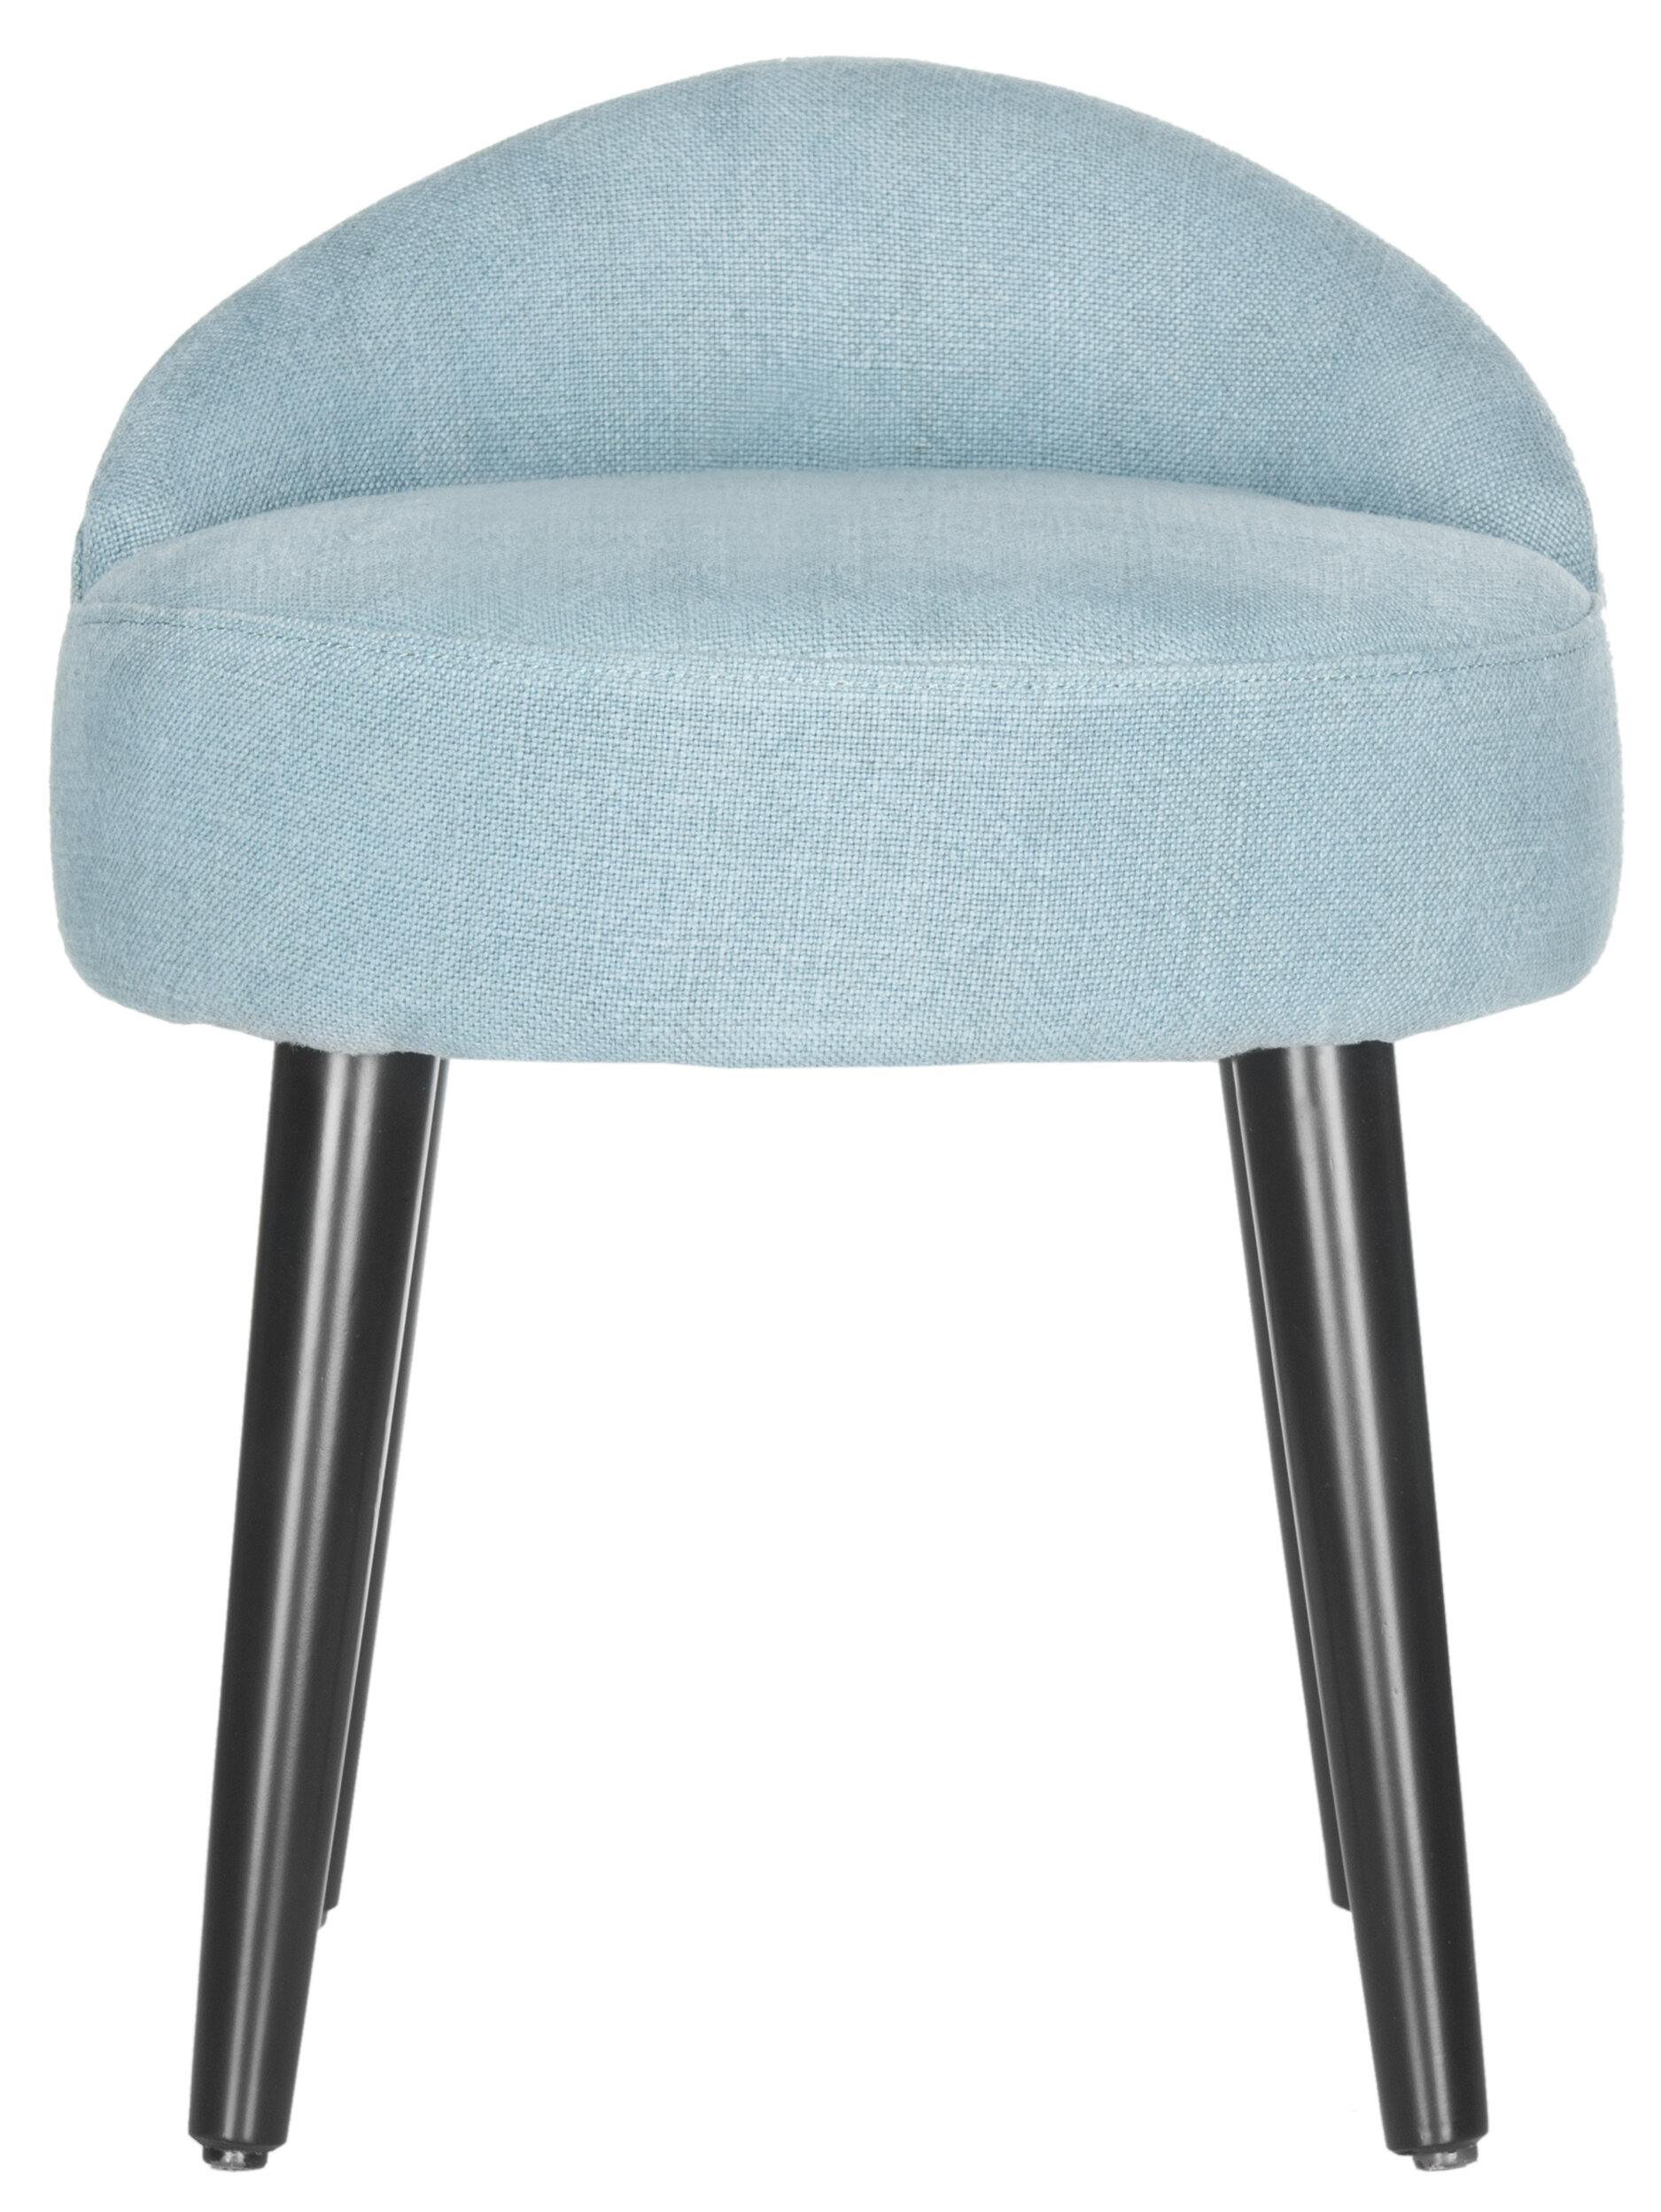 Image of: Modern Contemporary Vanity Accent Stools You Ll Love In 2020 Wayfair